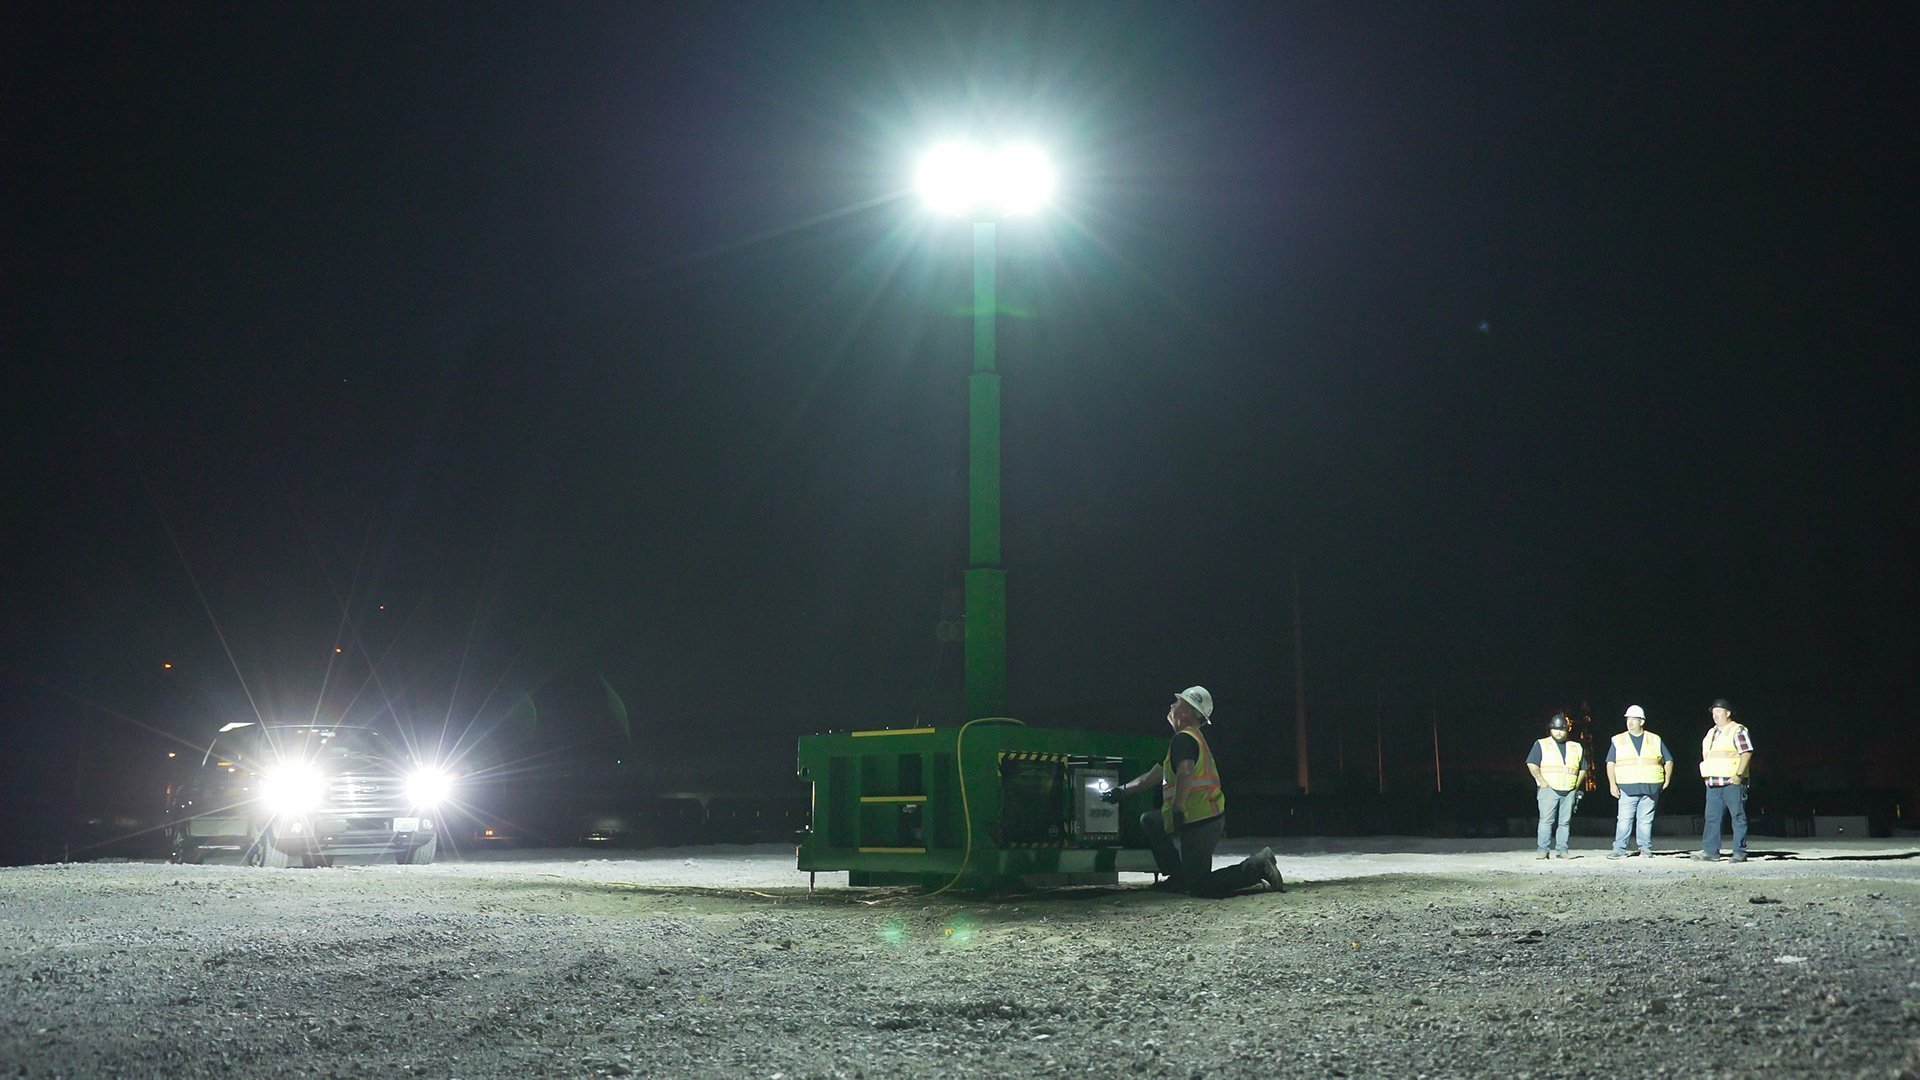 BRICKSkid, brick skid, zero-emissions, spark free construction, portable, explosion proof, led, light tower